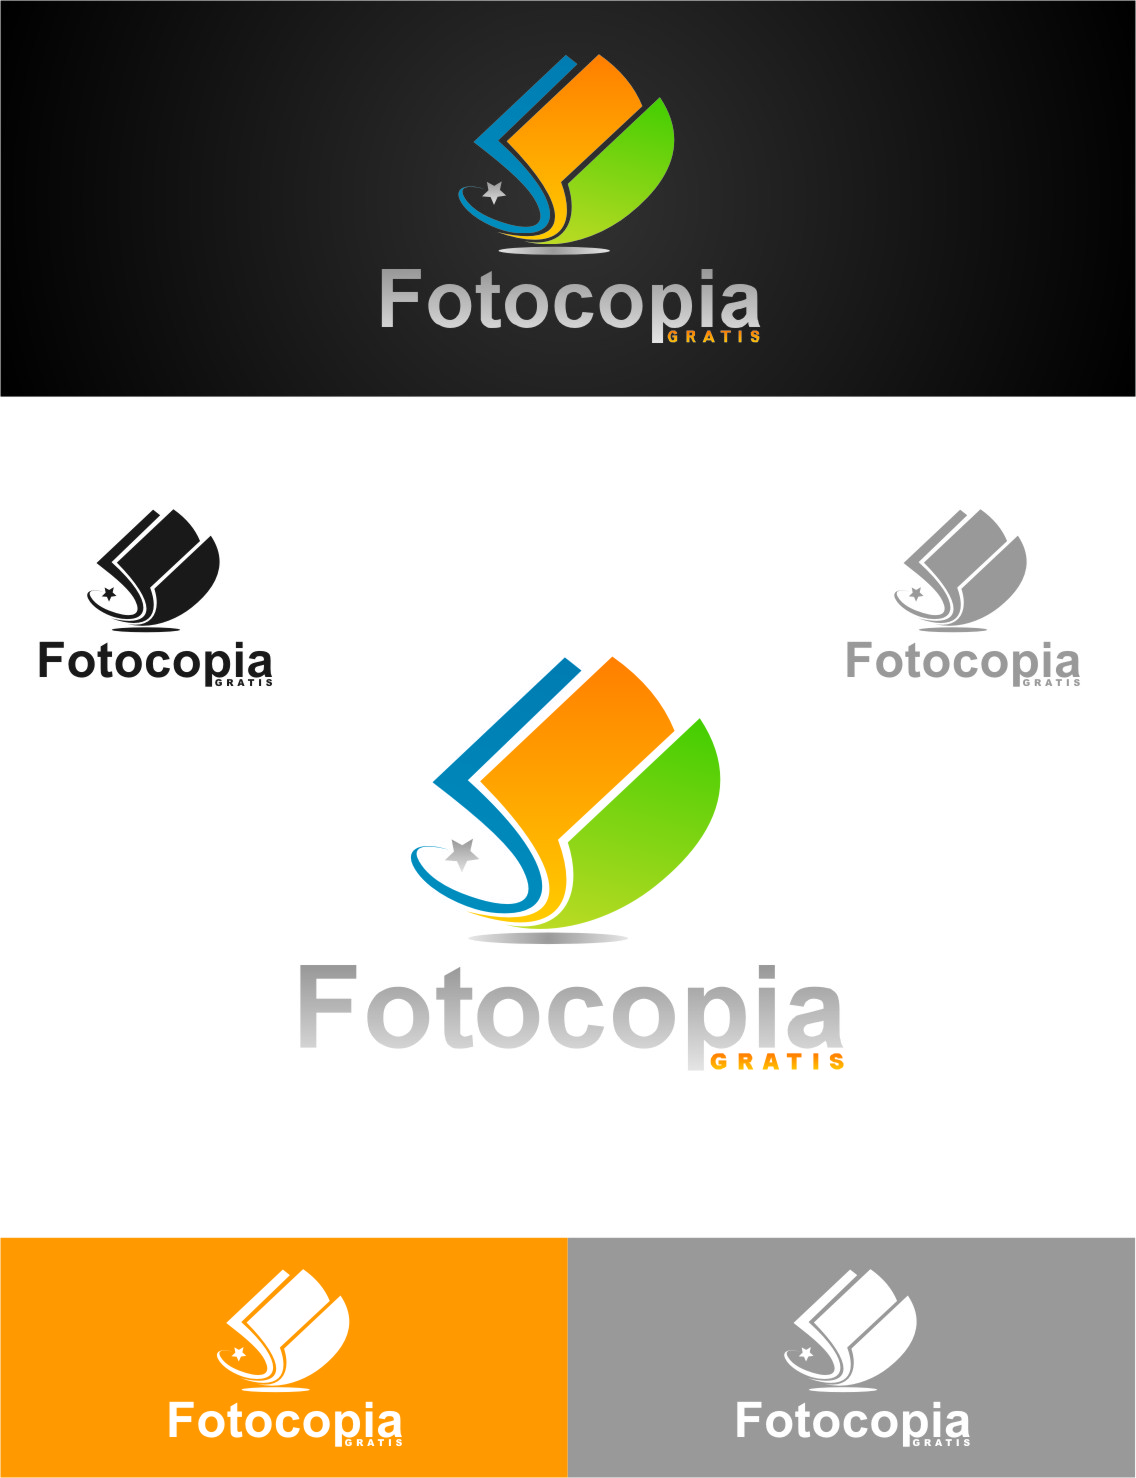 Logo Design by RasYa Muhammad Athaya - Entry No. 239 in the Logo Design Contest Inspiring Logo Design for Fotocopiagratis.